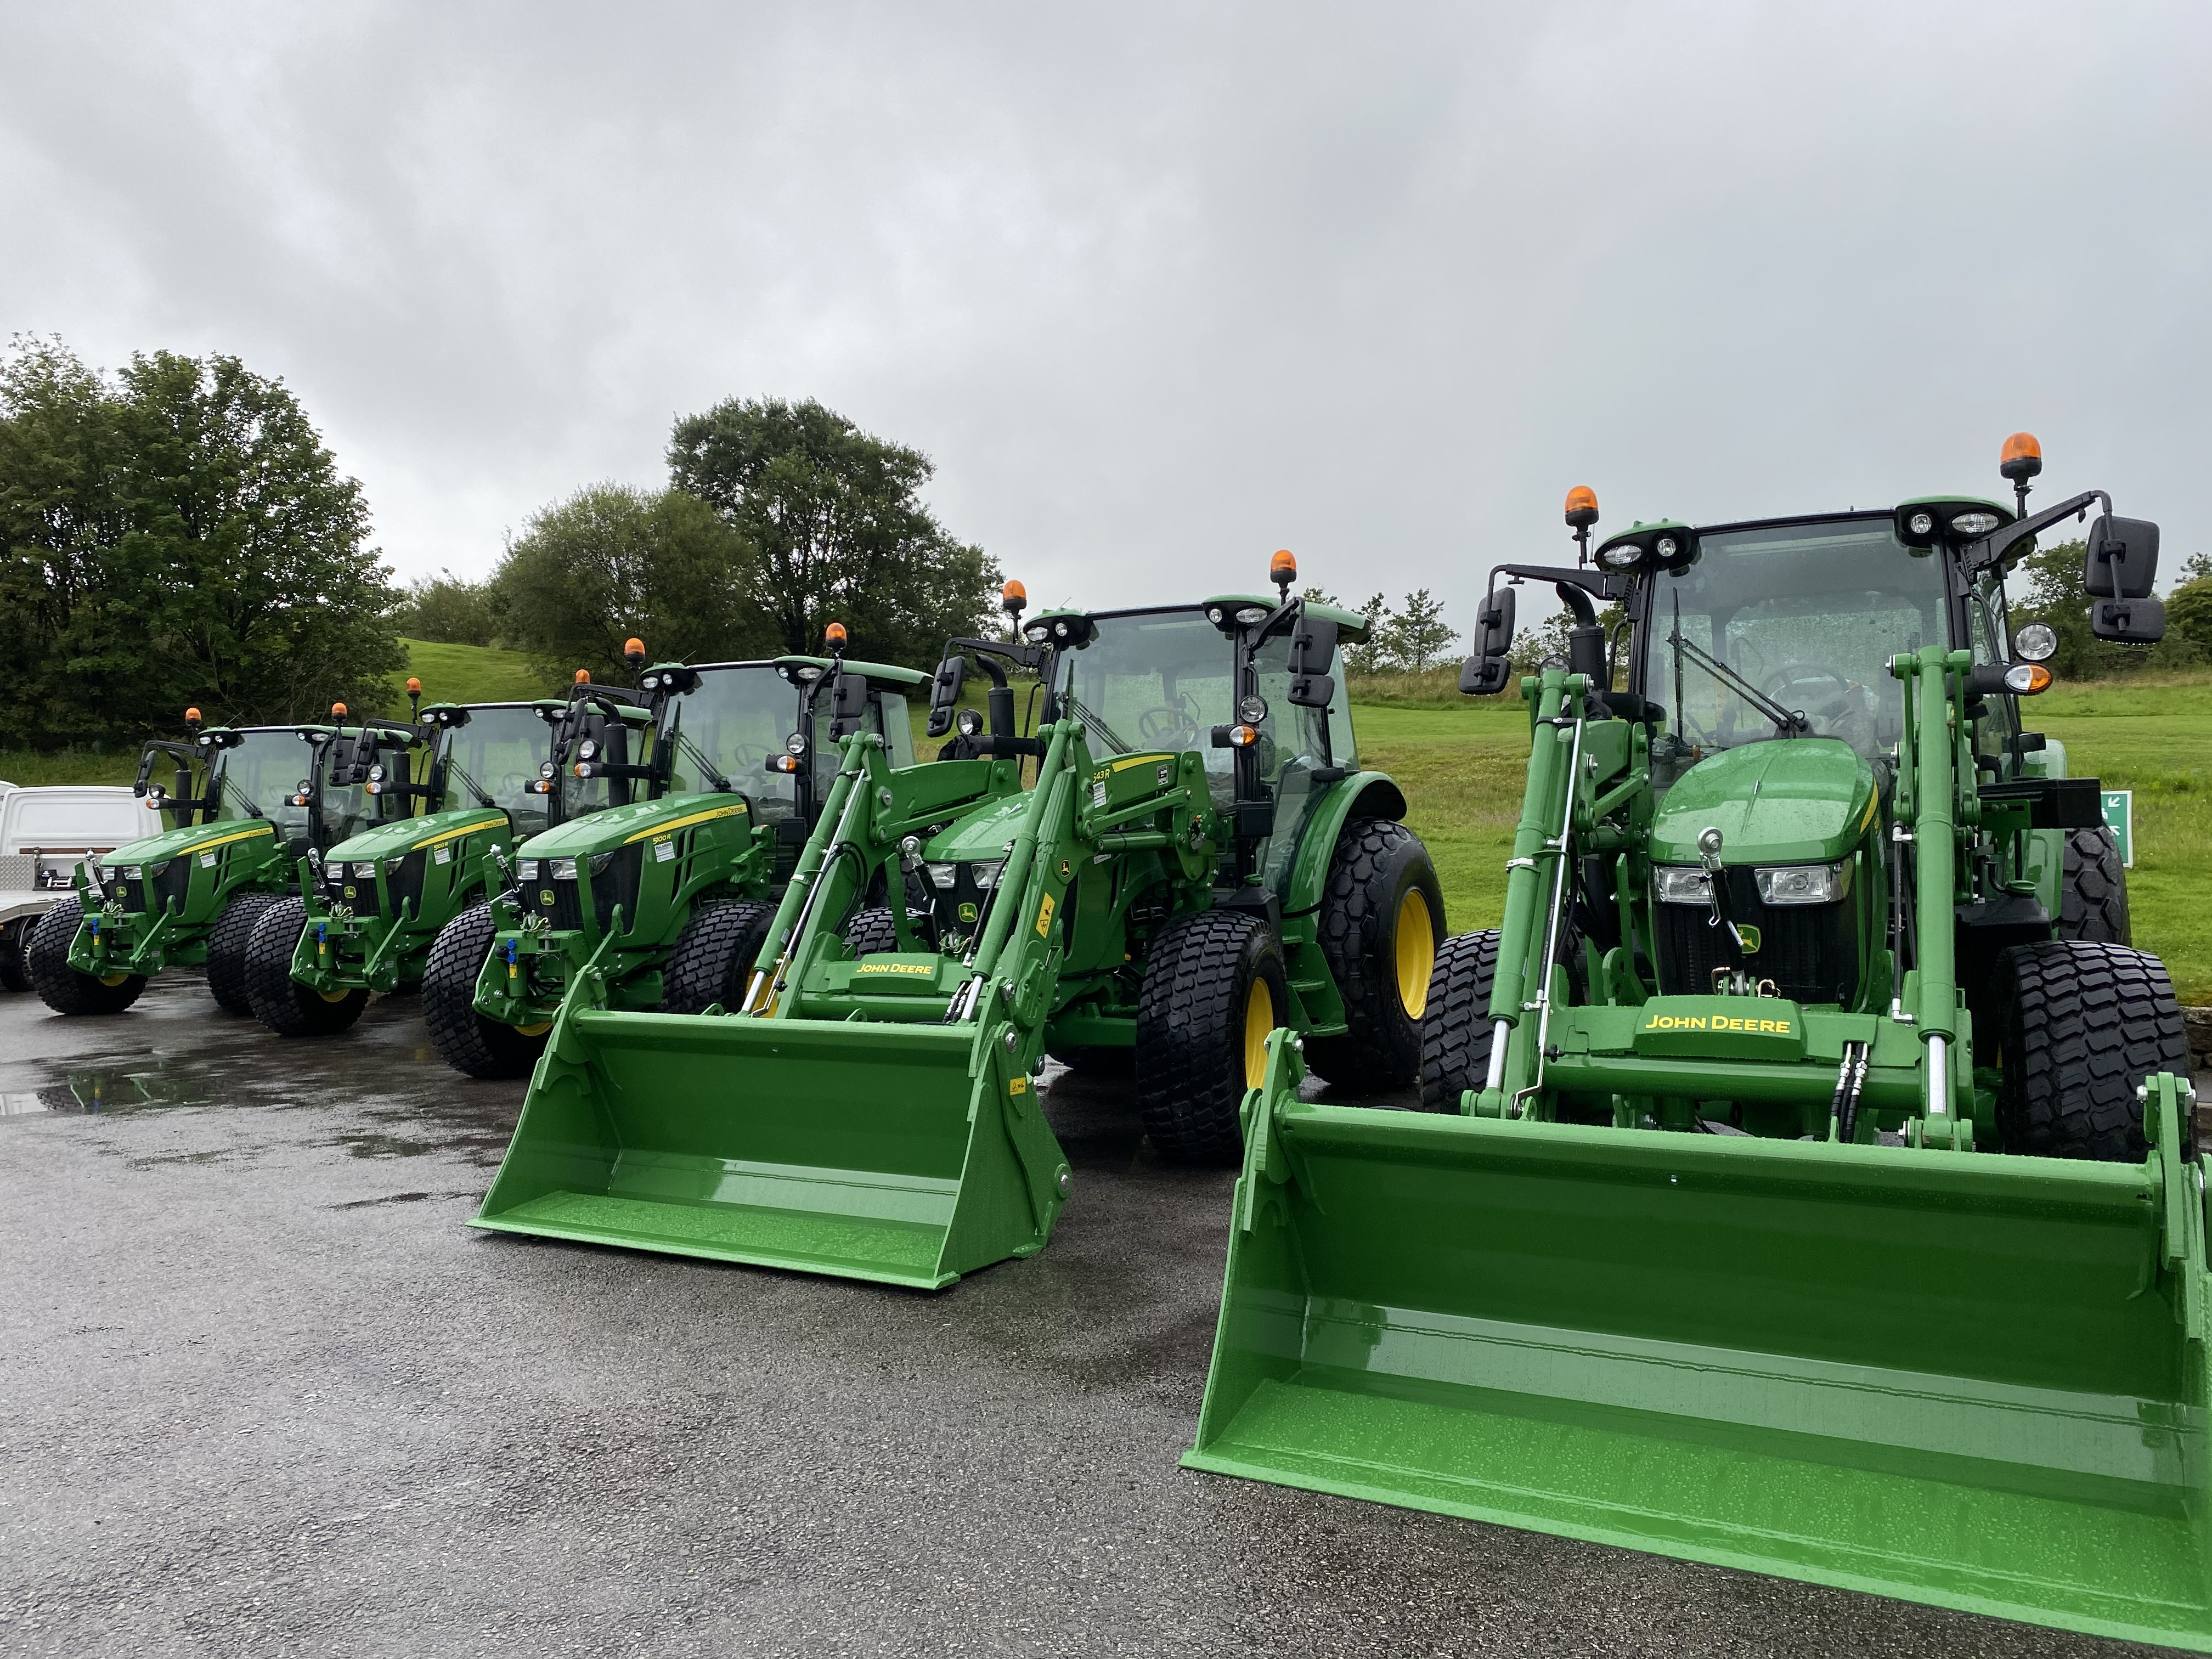 New John Deere 5100R Tractors for Local Authority